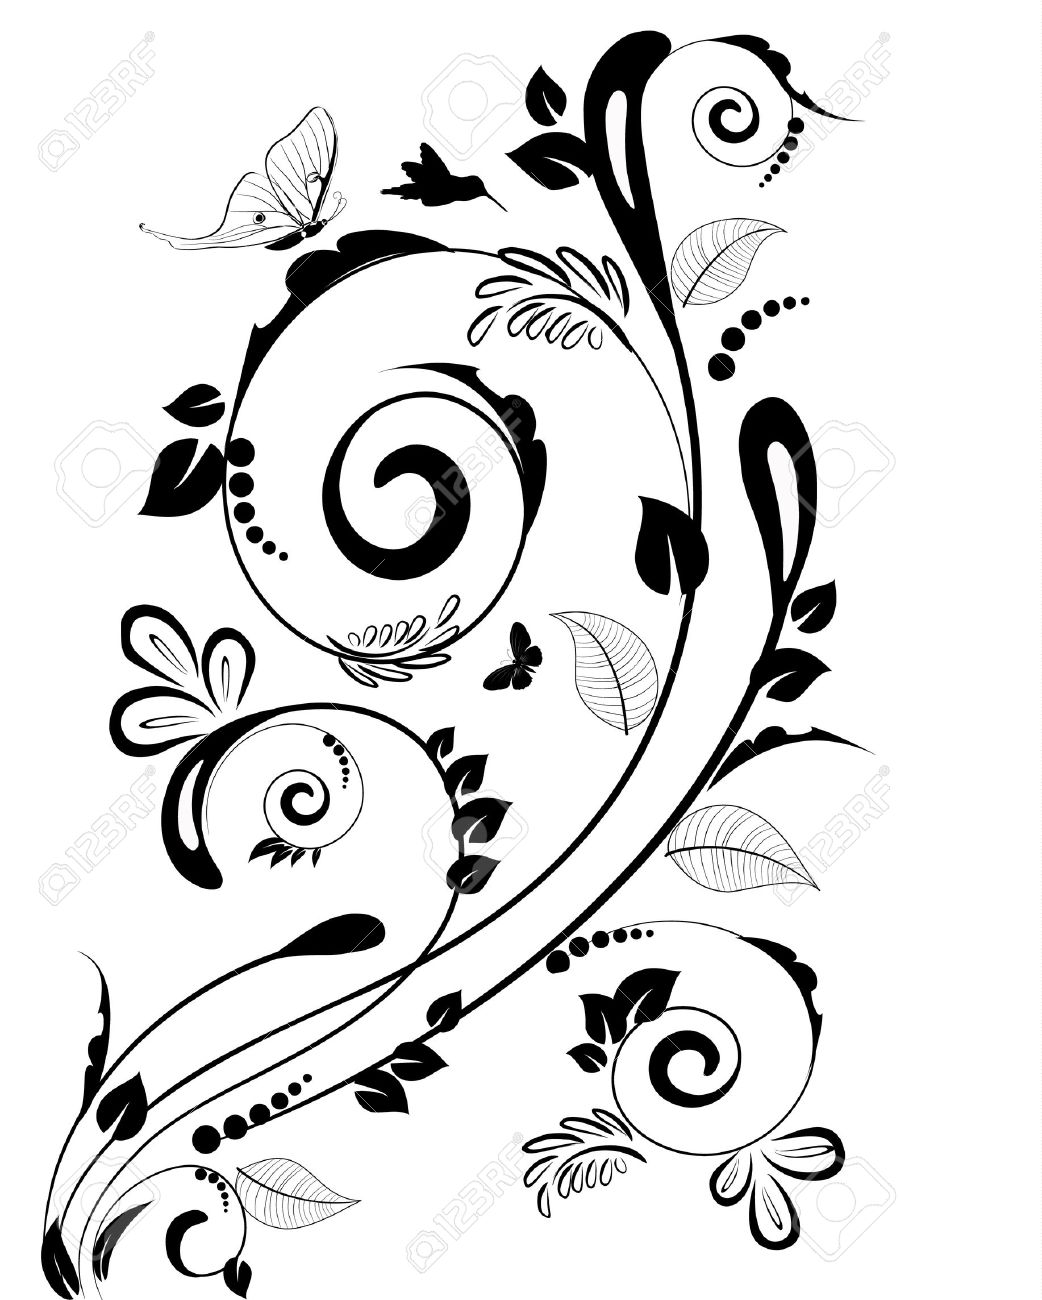 Vintage Floral Border For Your Design Royalty Free Cliparts Vectors